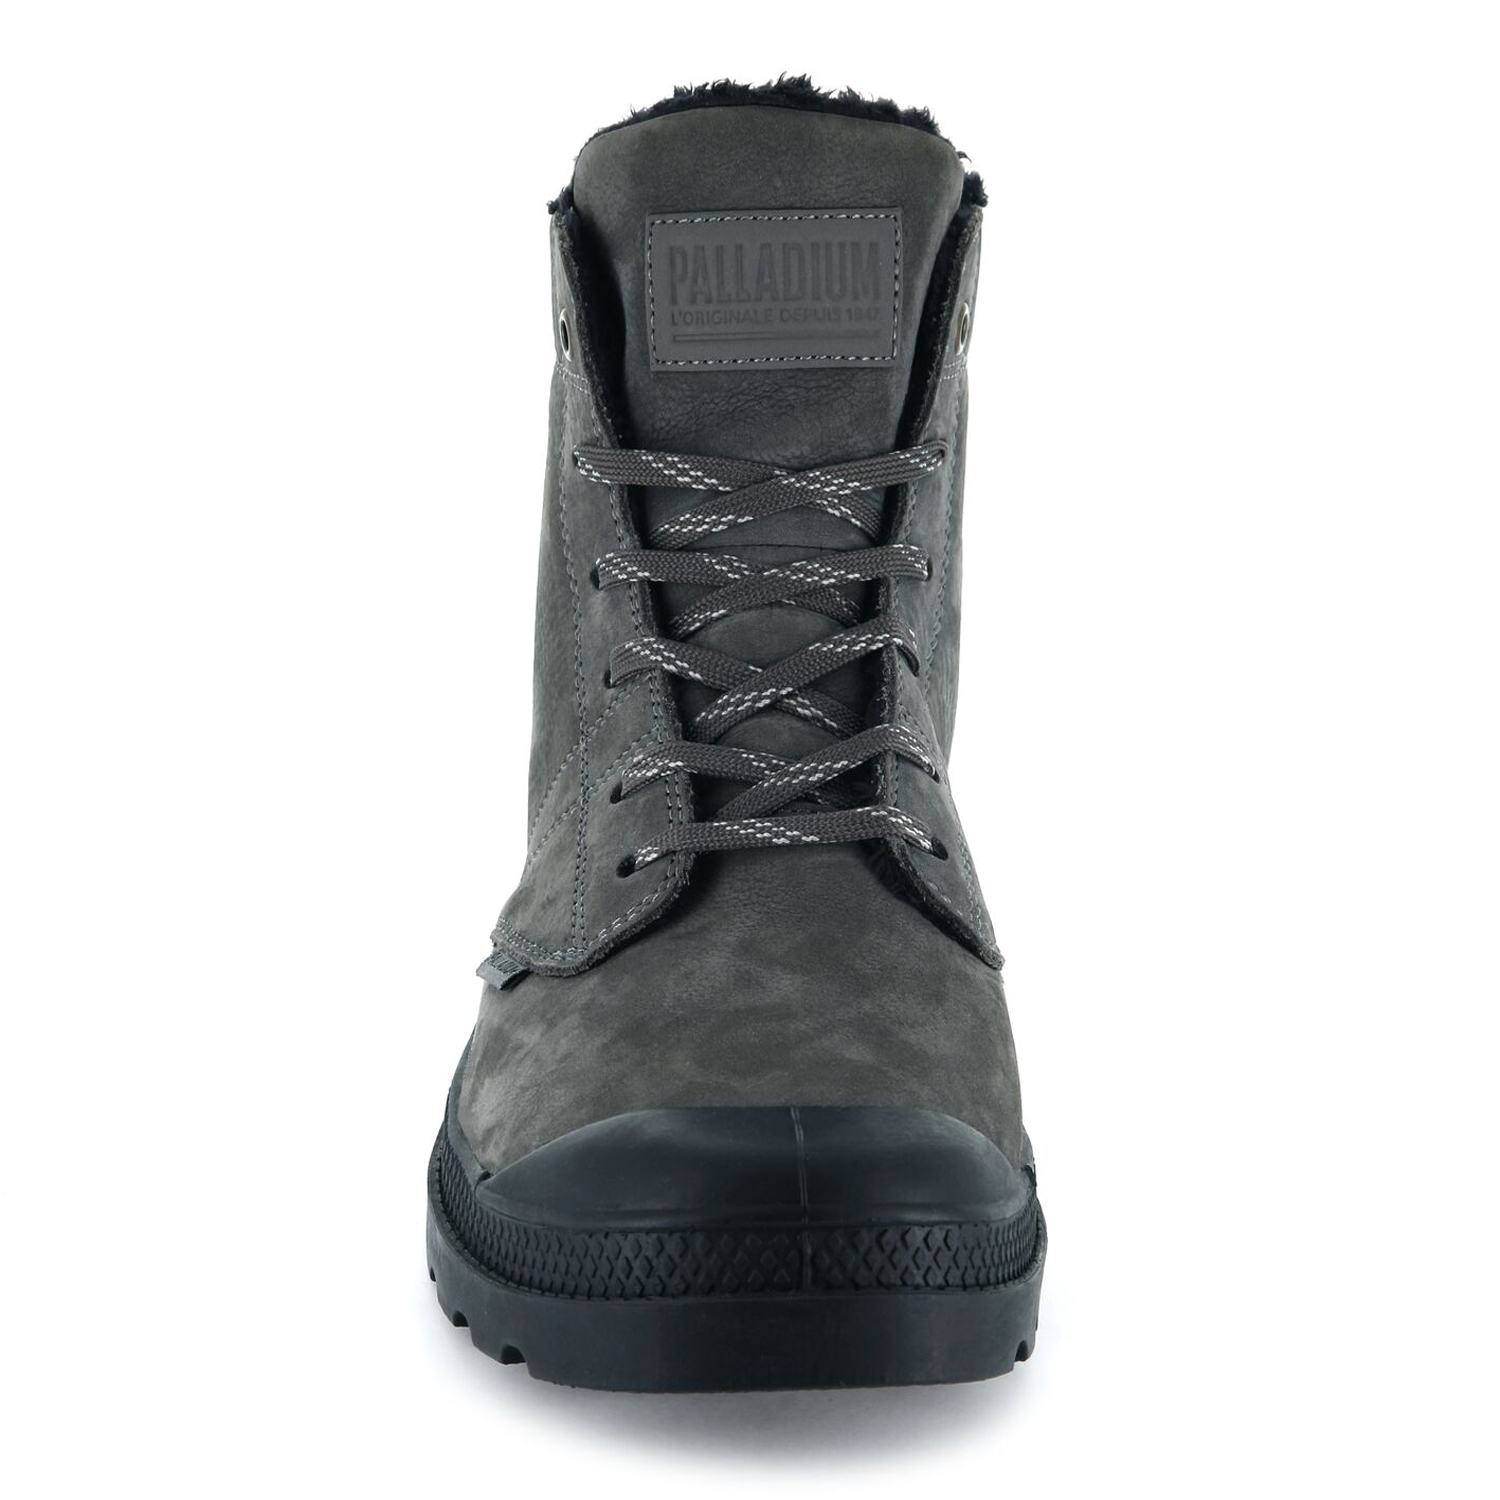 Palladium-Mens-Pallabrousse-Leather-Hi-Top-Boots-Walking-Workwear-Lace-Up-Shoes thumbnail 5